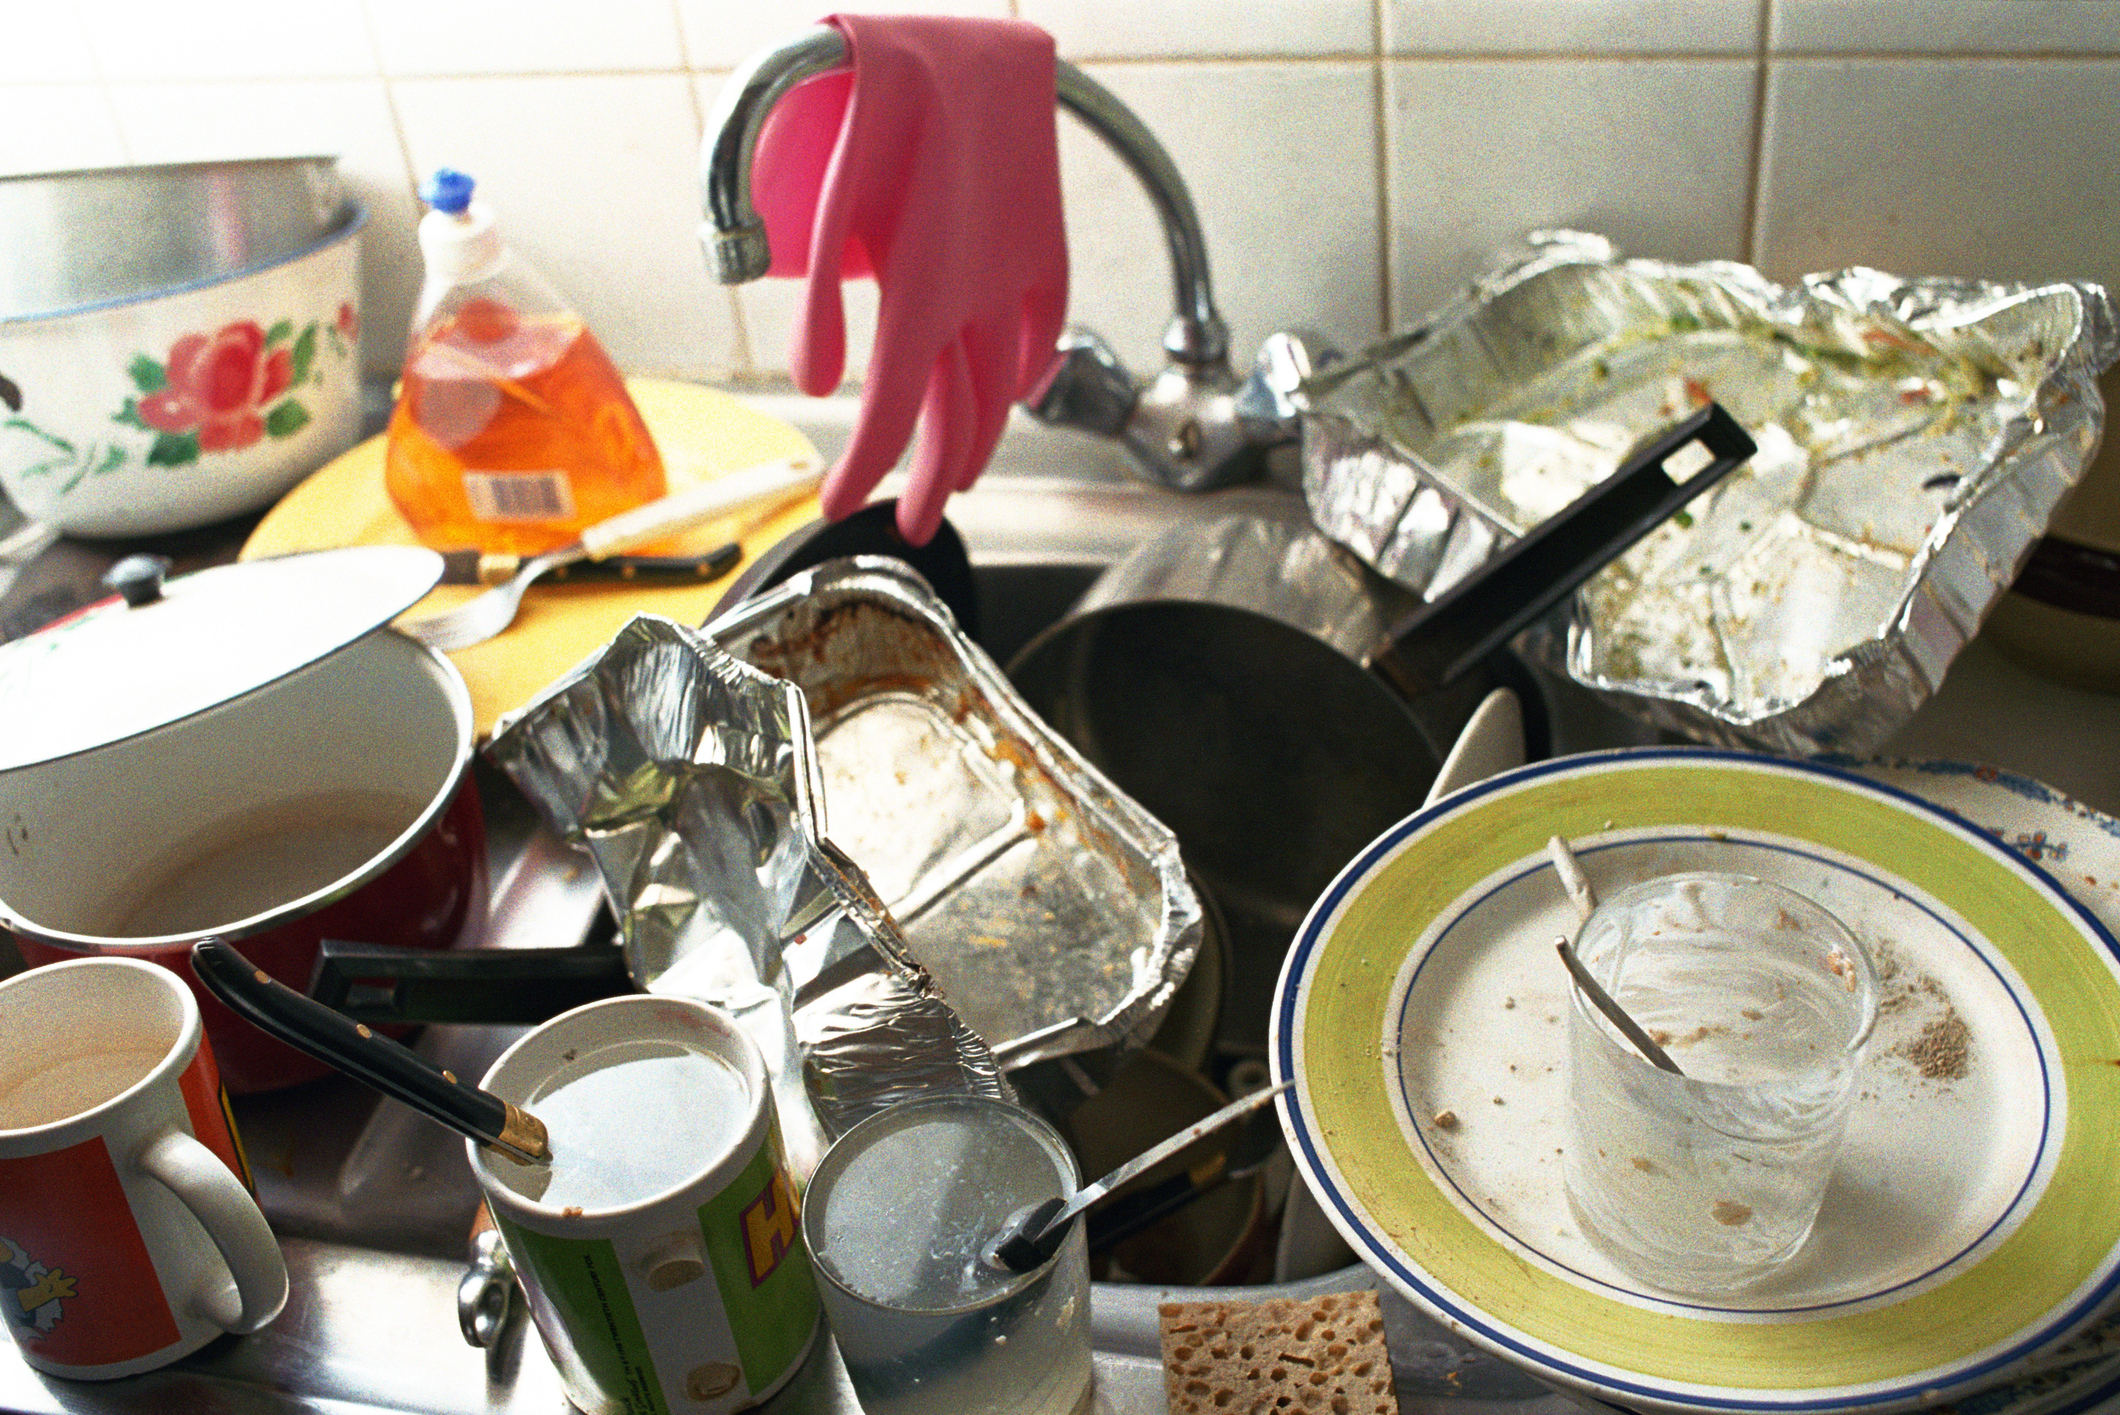 15 kitchen items we're all hoarding and should throw out immediately